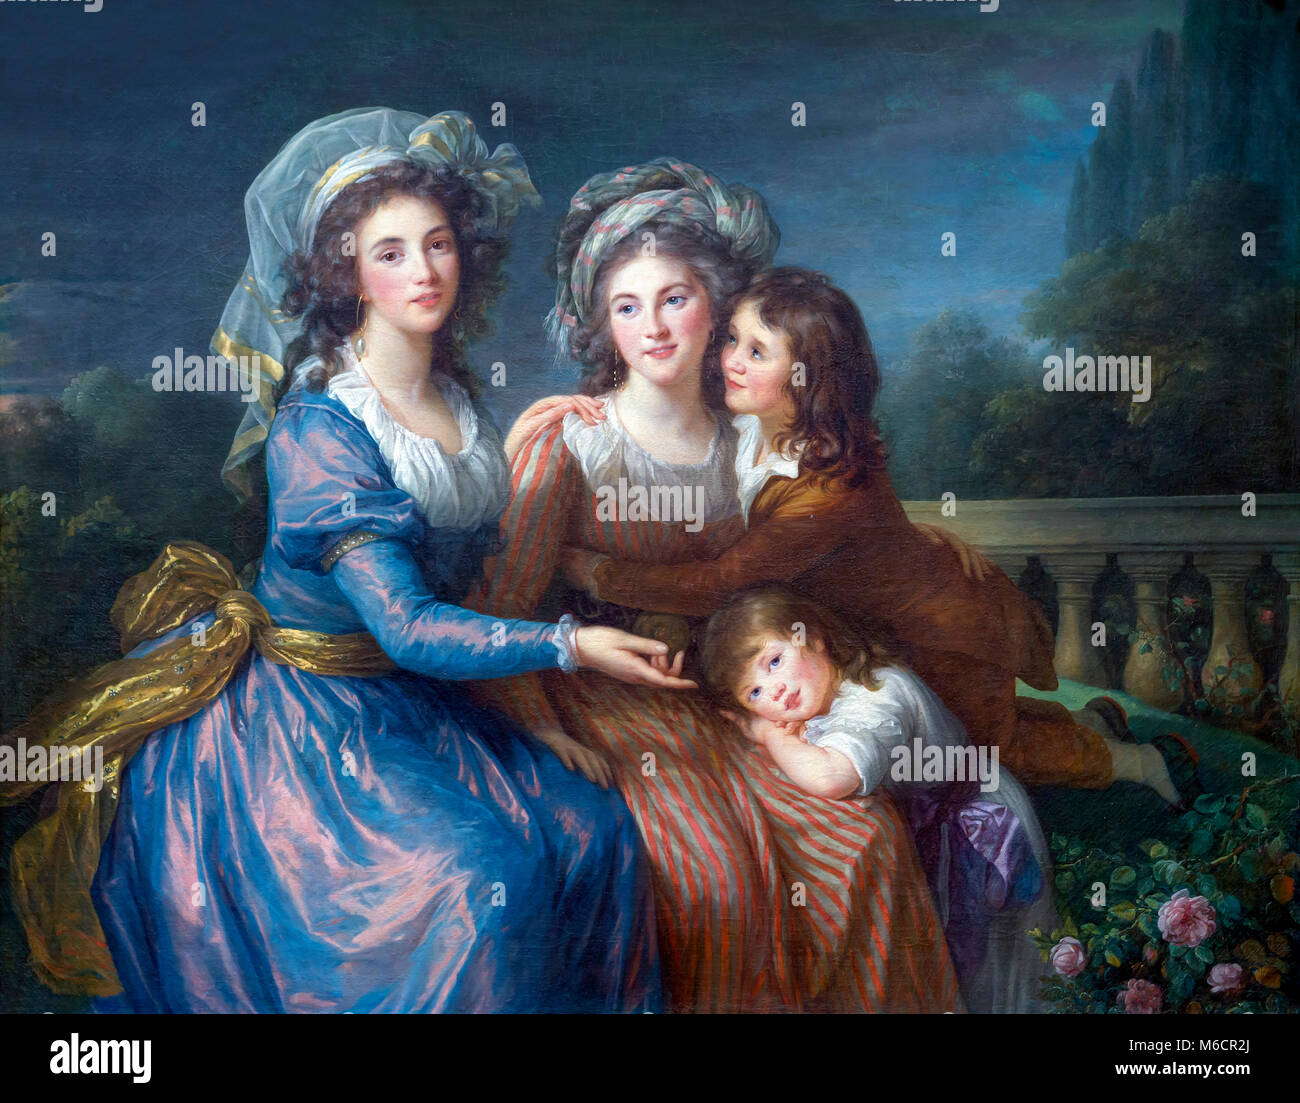 The Marquise de Pezay and the Marquise de Rouge with Her Sons Alexis and Adrien, Elizabeth Louise Vigee Le Brun, - Stock Image